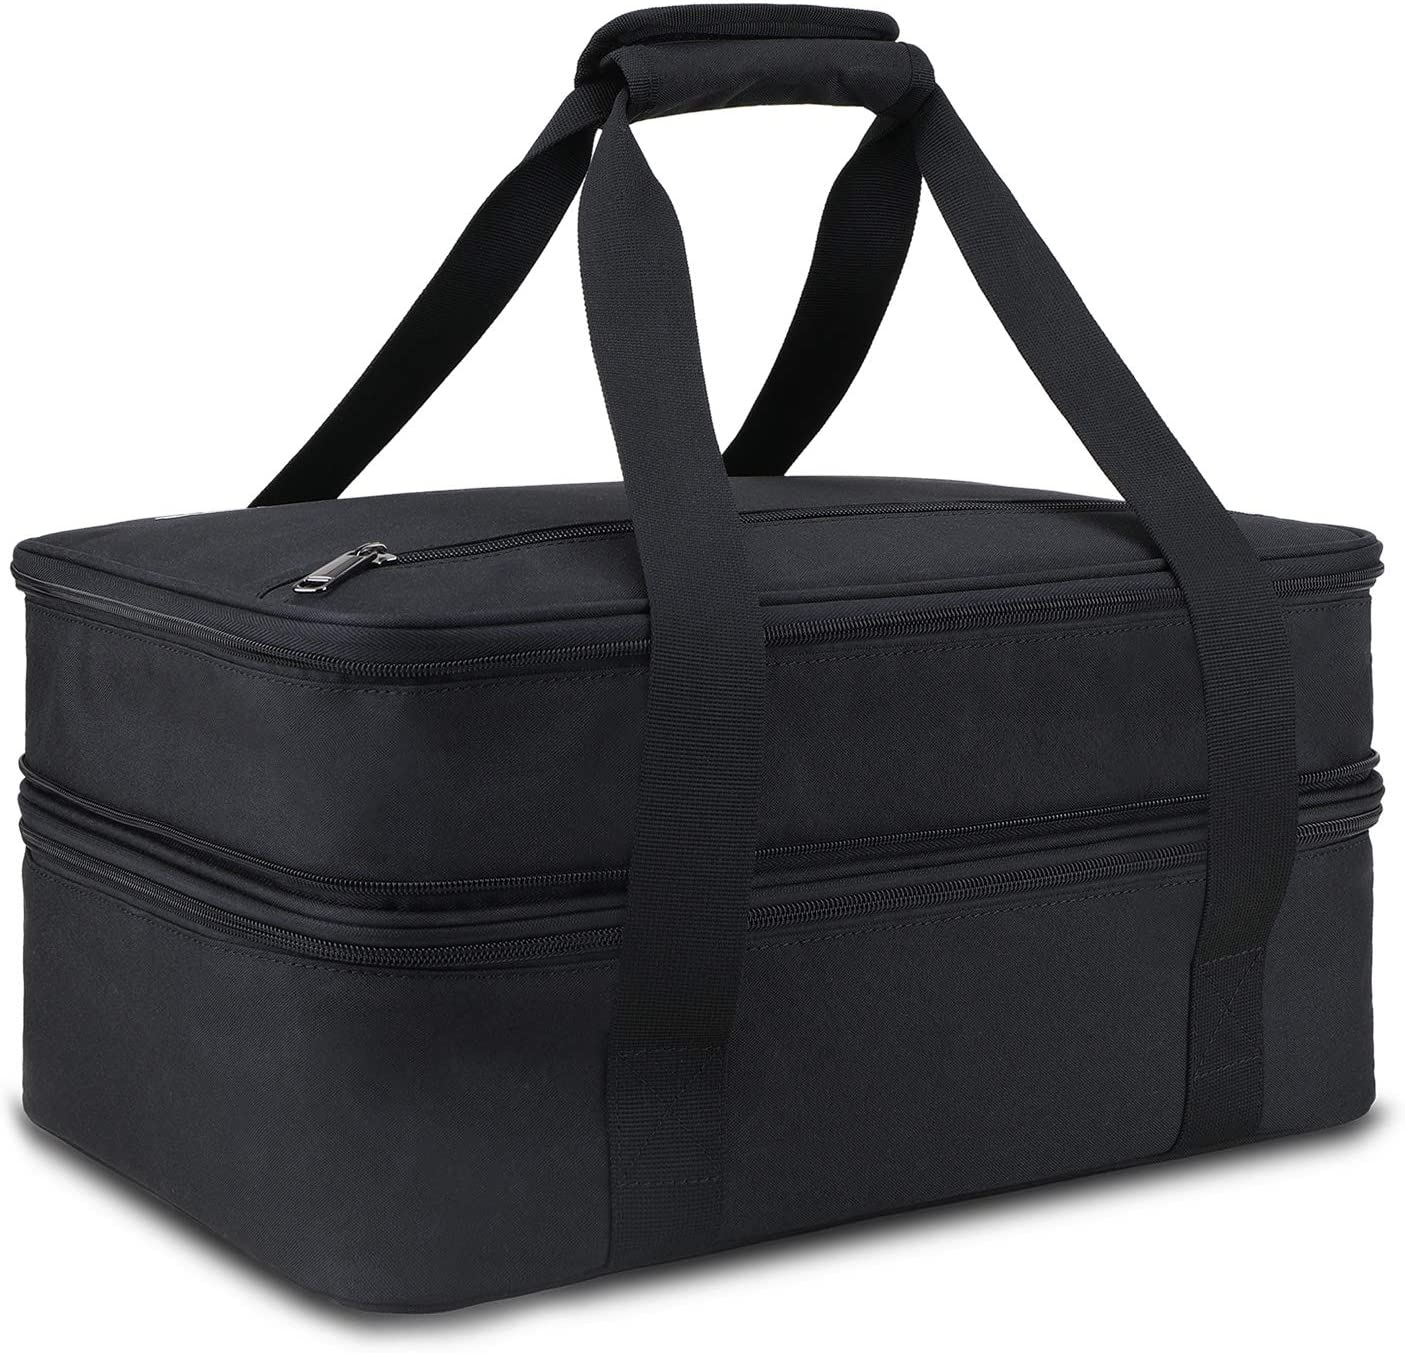 Weitars Double Decker Casserole Carrier Insulated Expandable Large Cooler Bag Leakproof Cooler Bag Holder Tote for BBQ, Picnic, Party, Camping (Black)